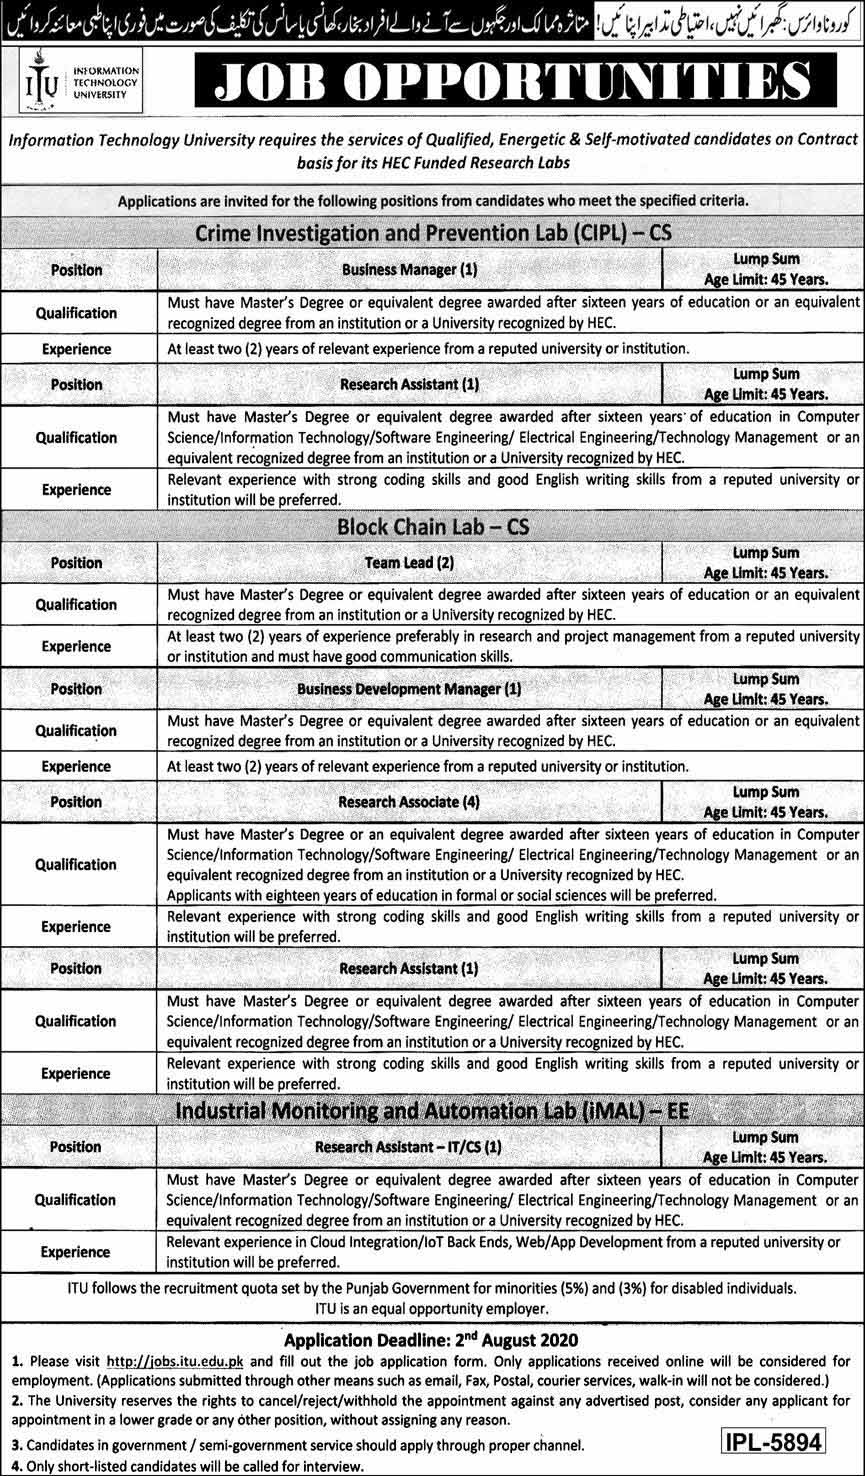 Information Technology University Jobs July 2020